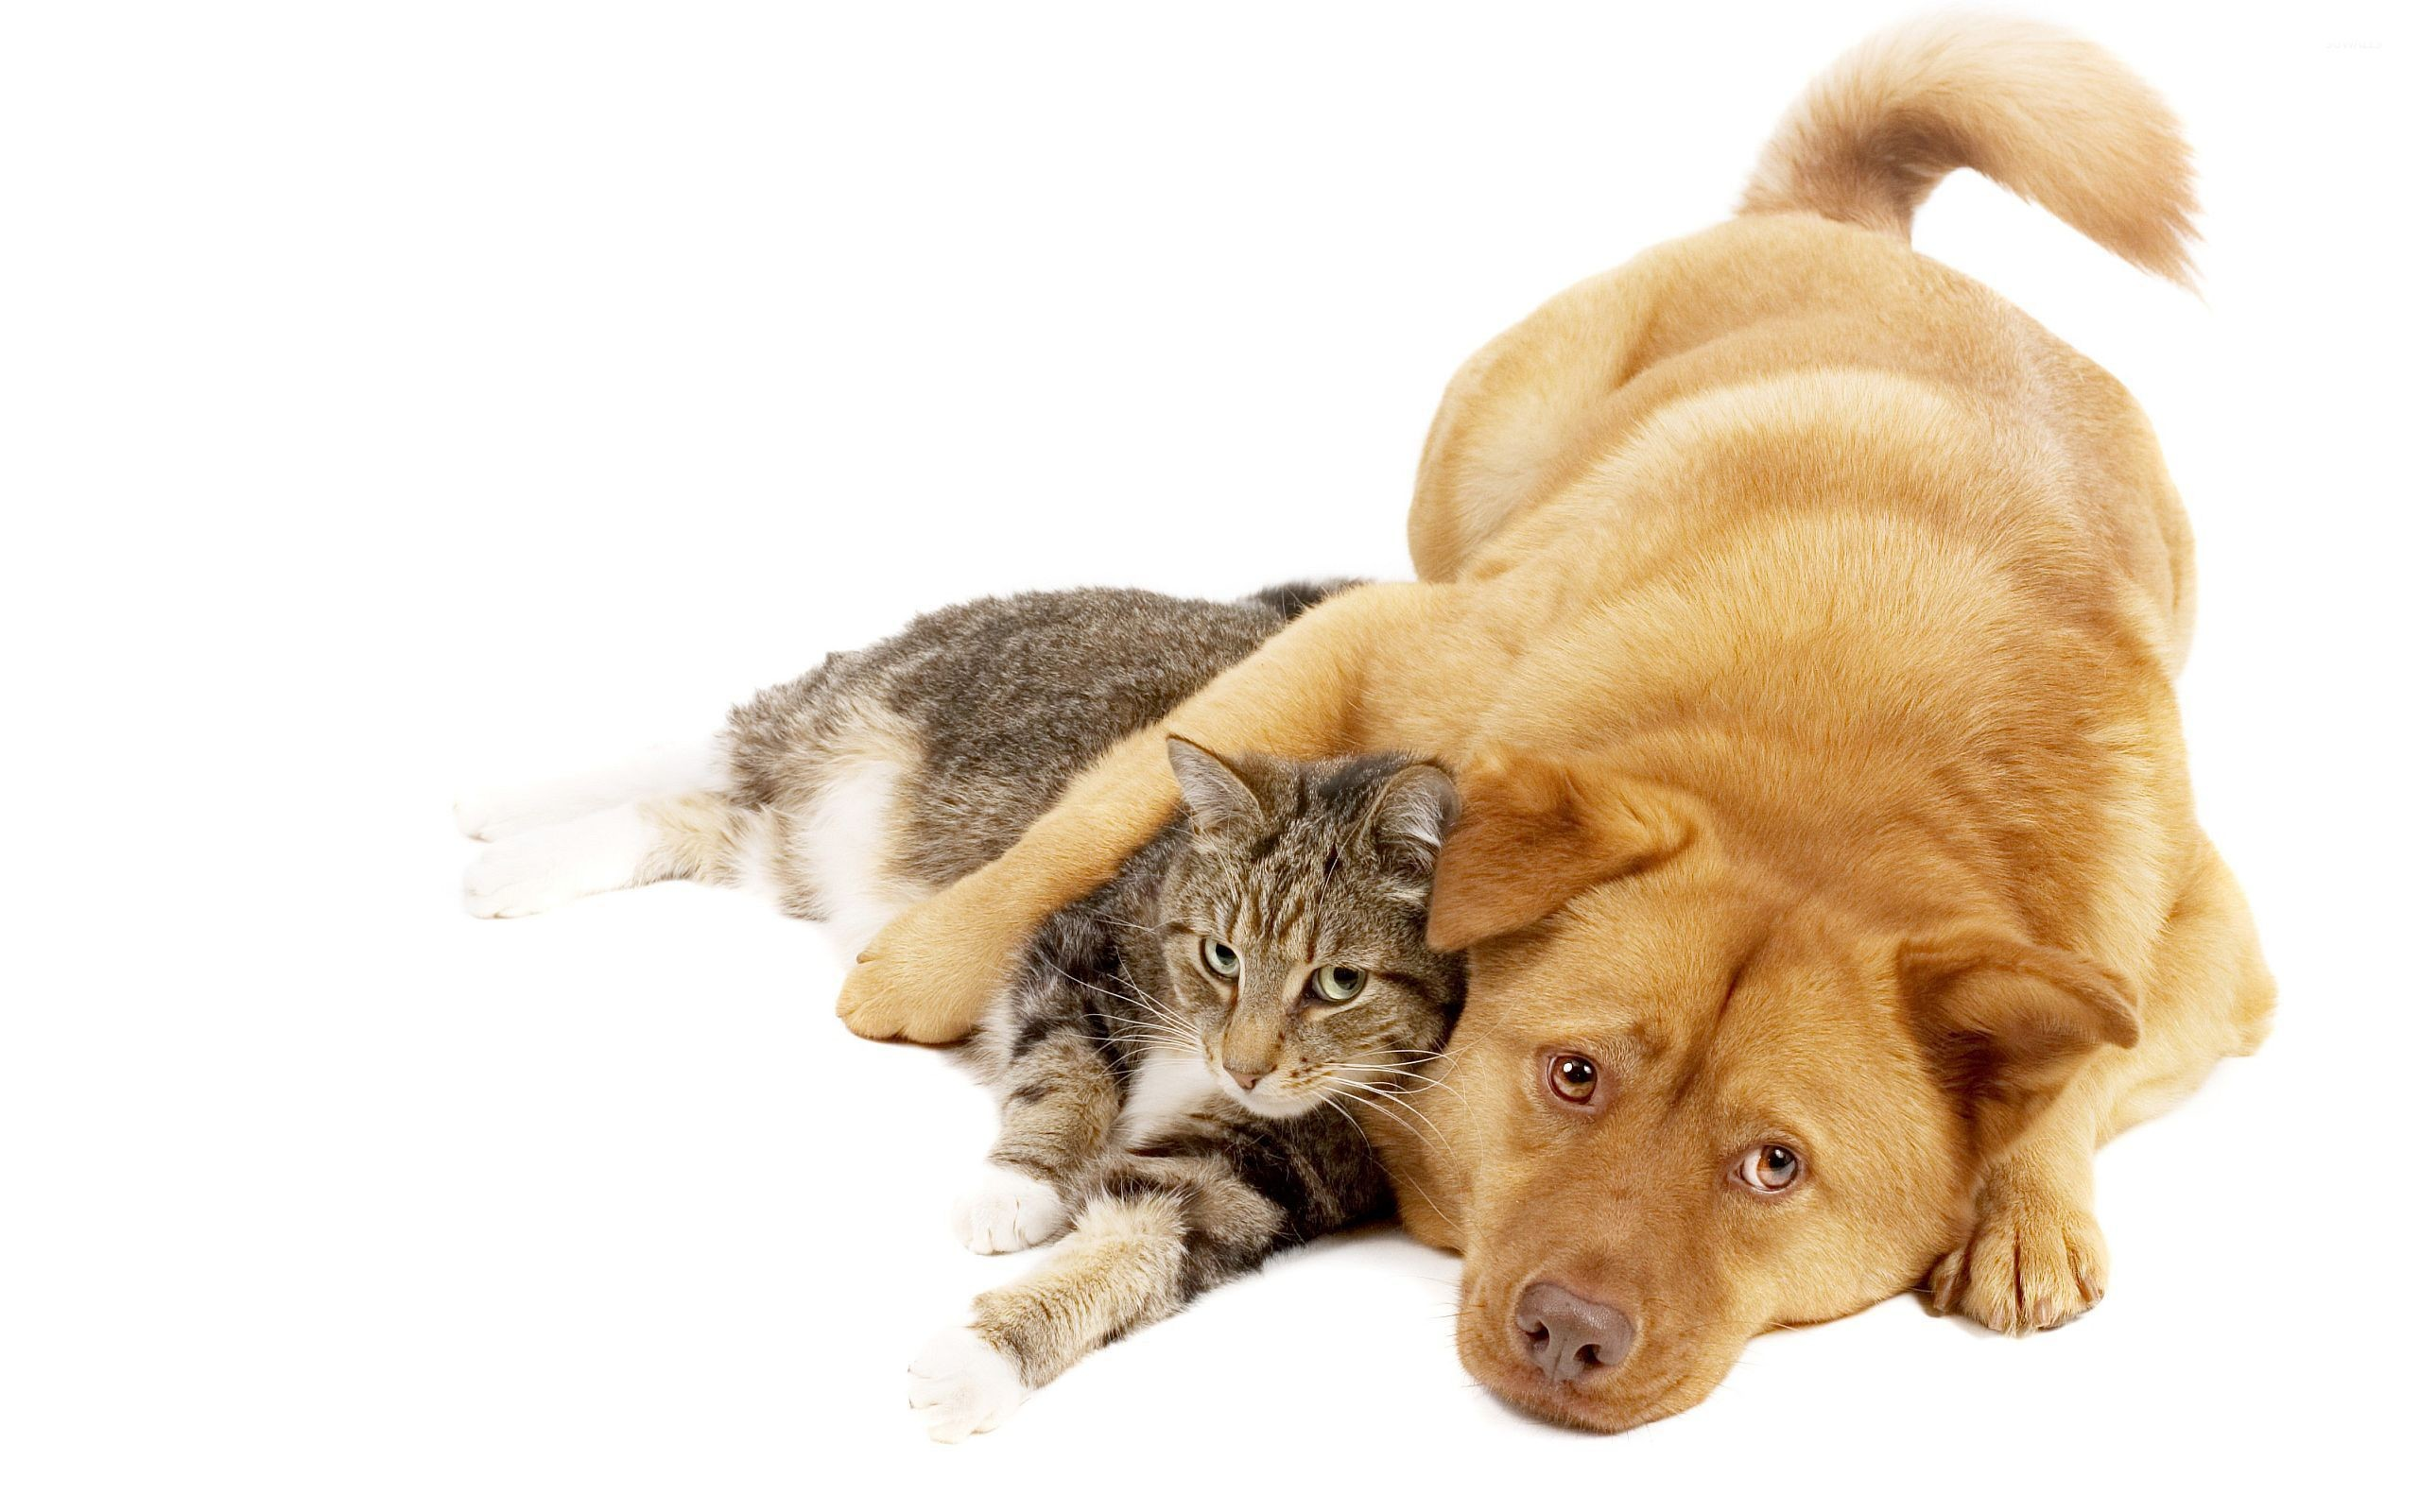 CAT AND DOG WALLPAPER Images | Crazy Gallery